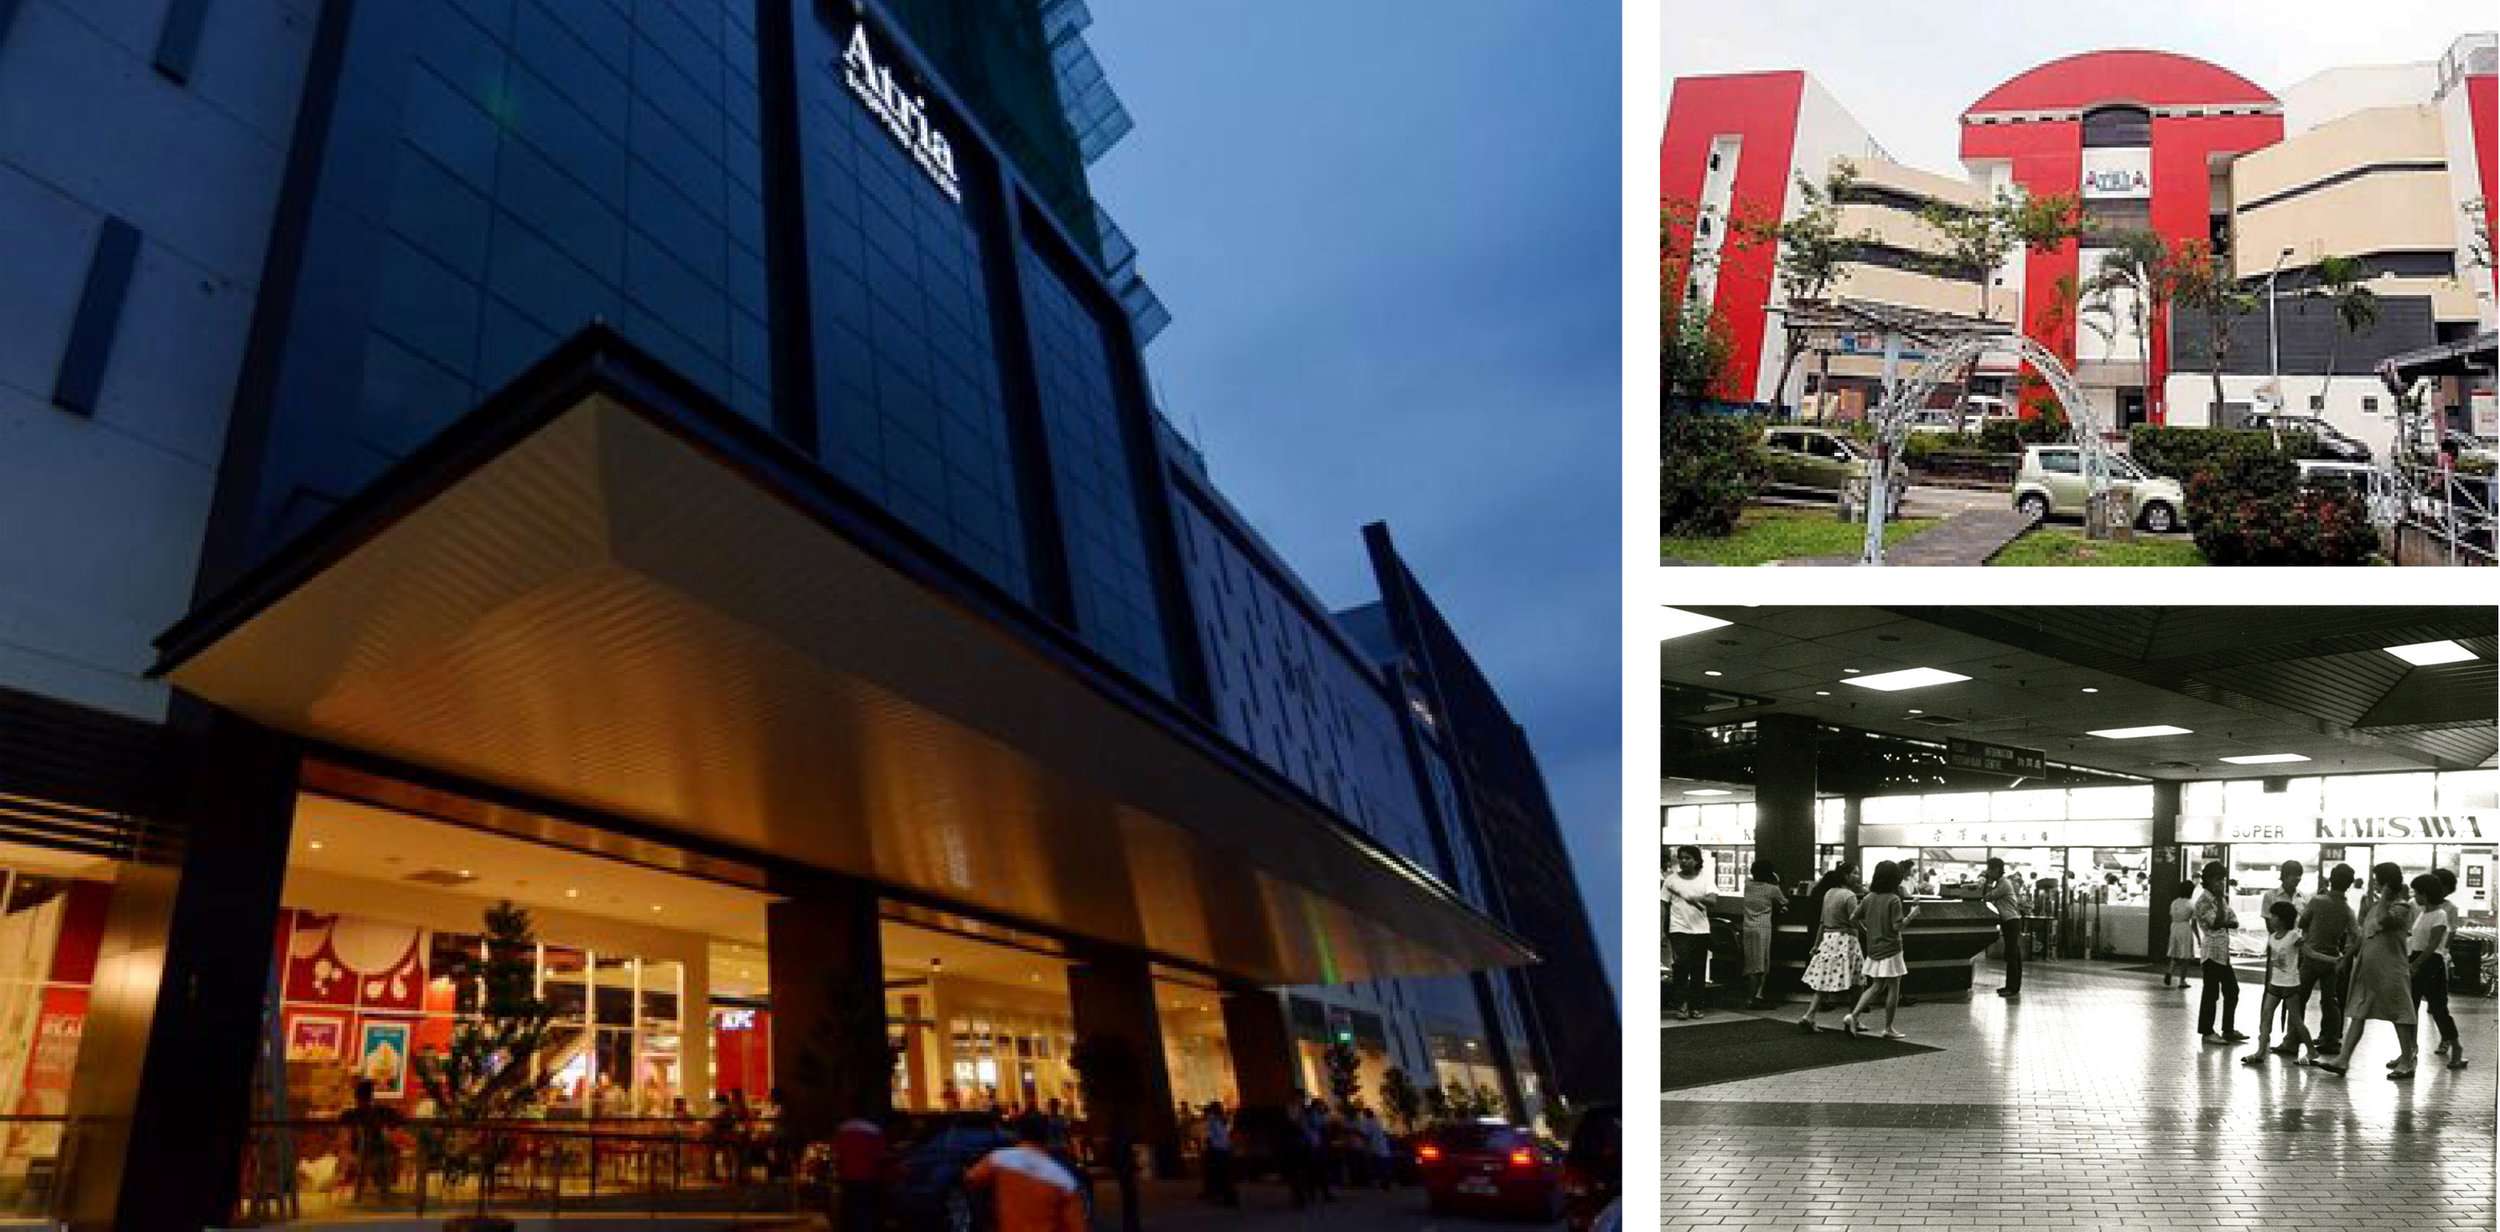 Above: Atria Shopping Gallery today—a total transformation in all aspects. Top right: Atria in the 80s, known for its infamous Piccadilly Discotheque, fashion-forward Printemps department store, and Kimisawa (bottom, right), Malaysia's first Japanese supermarket.